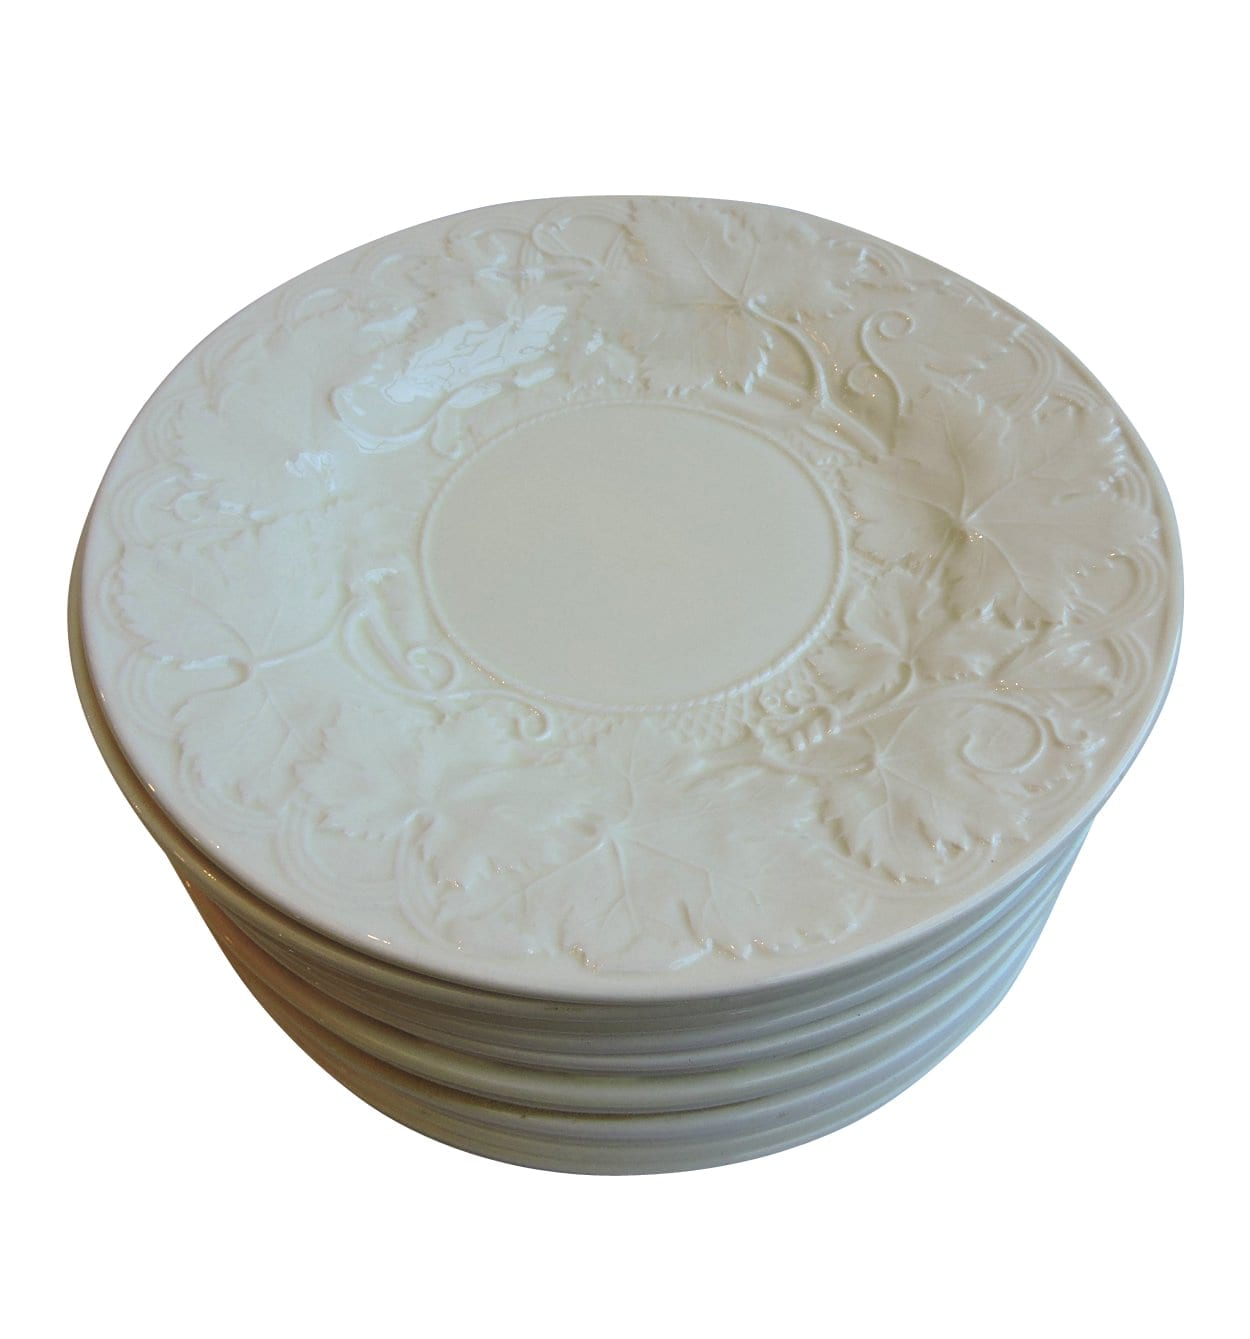 china - wedgwoodcreamwareplates-01-1.jpg